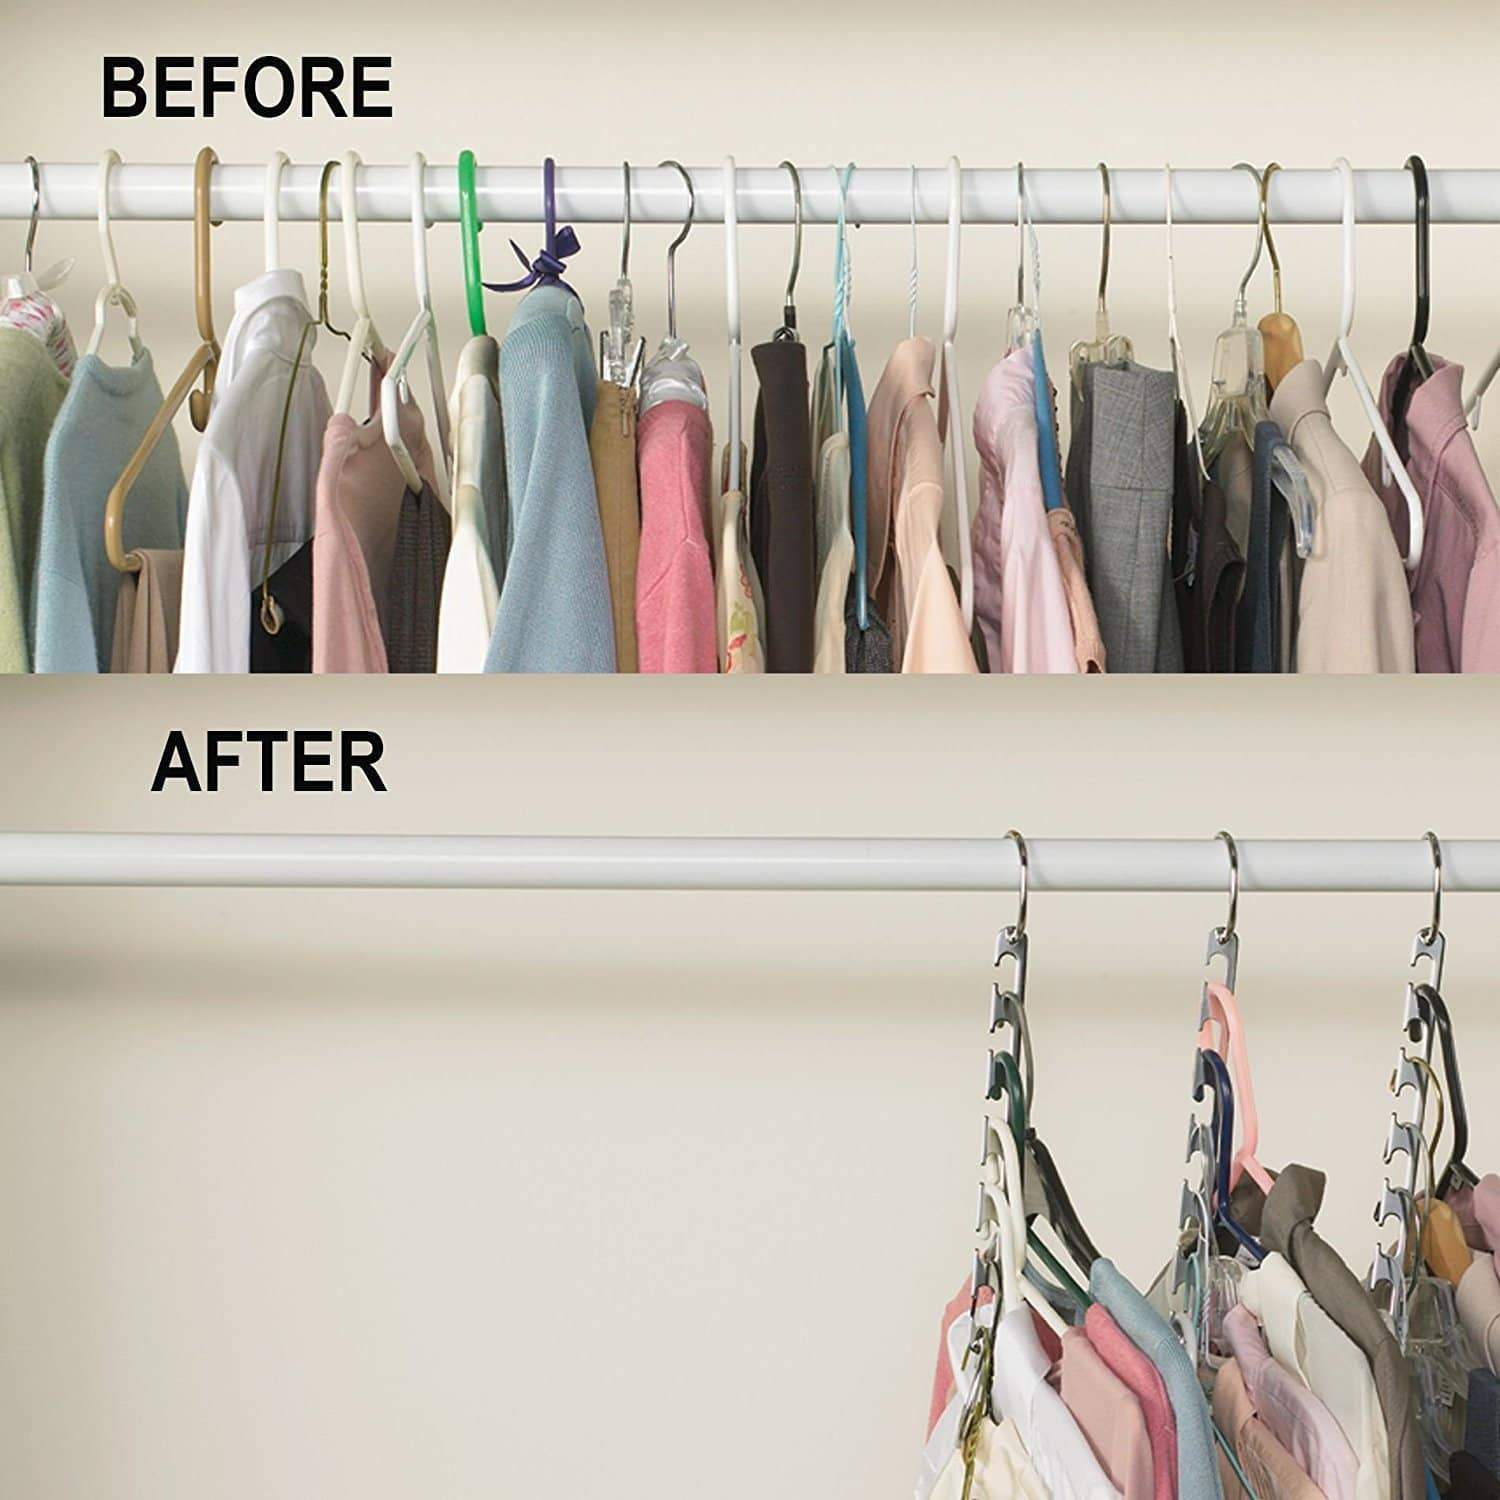 Best seller  premium presents closet organizer hanger save space closet hanging organizer clothes hangers coat hangers for wardrobe closet and closet storage brand comparable to wonder hangers 9 pack